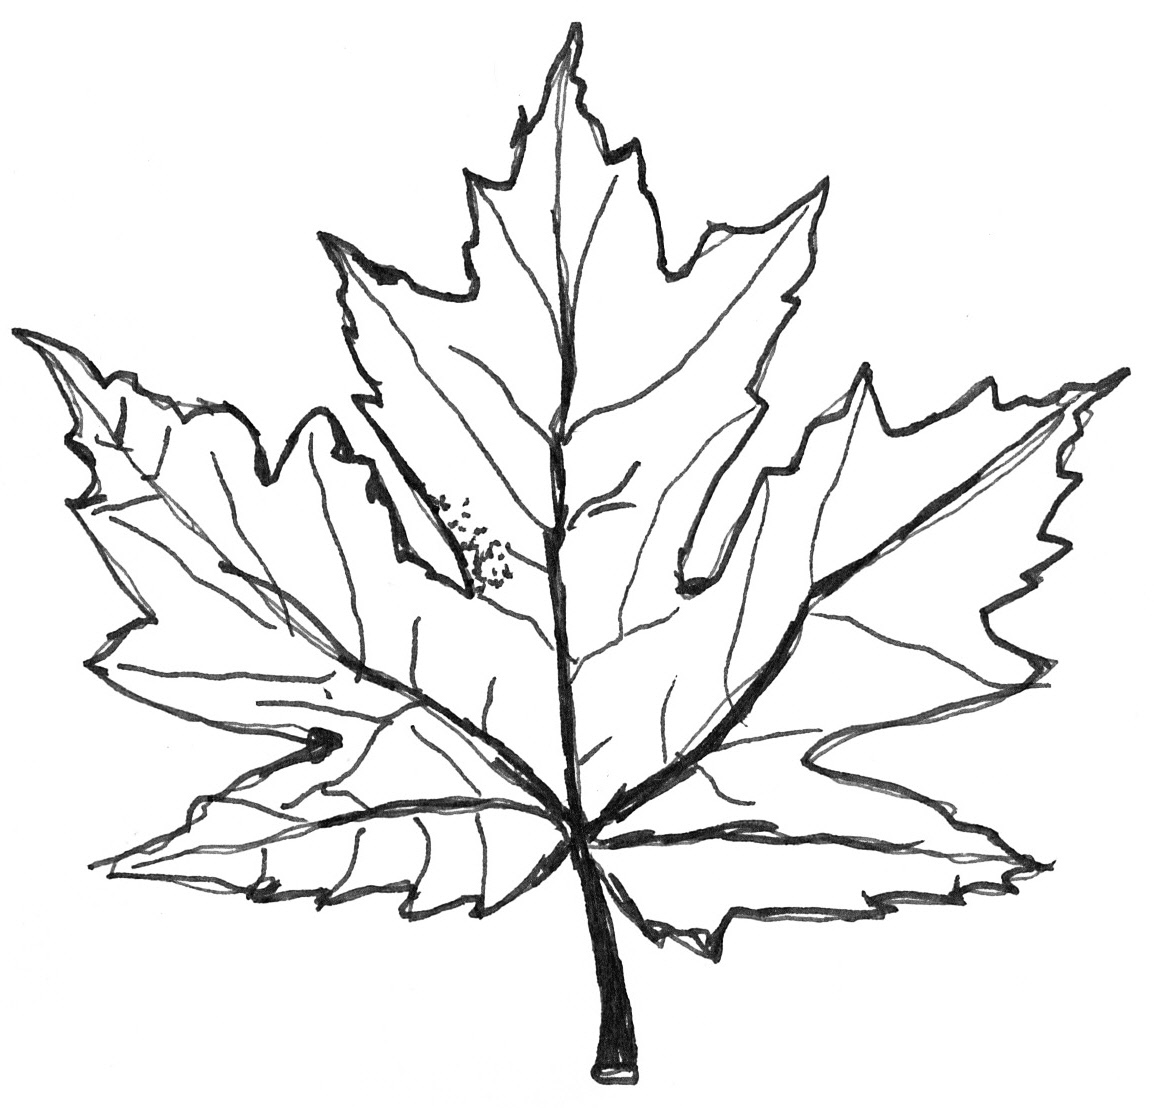 Autumn Leaf Drawing At Getdrawings